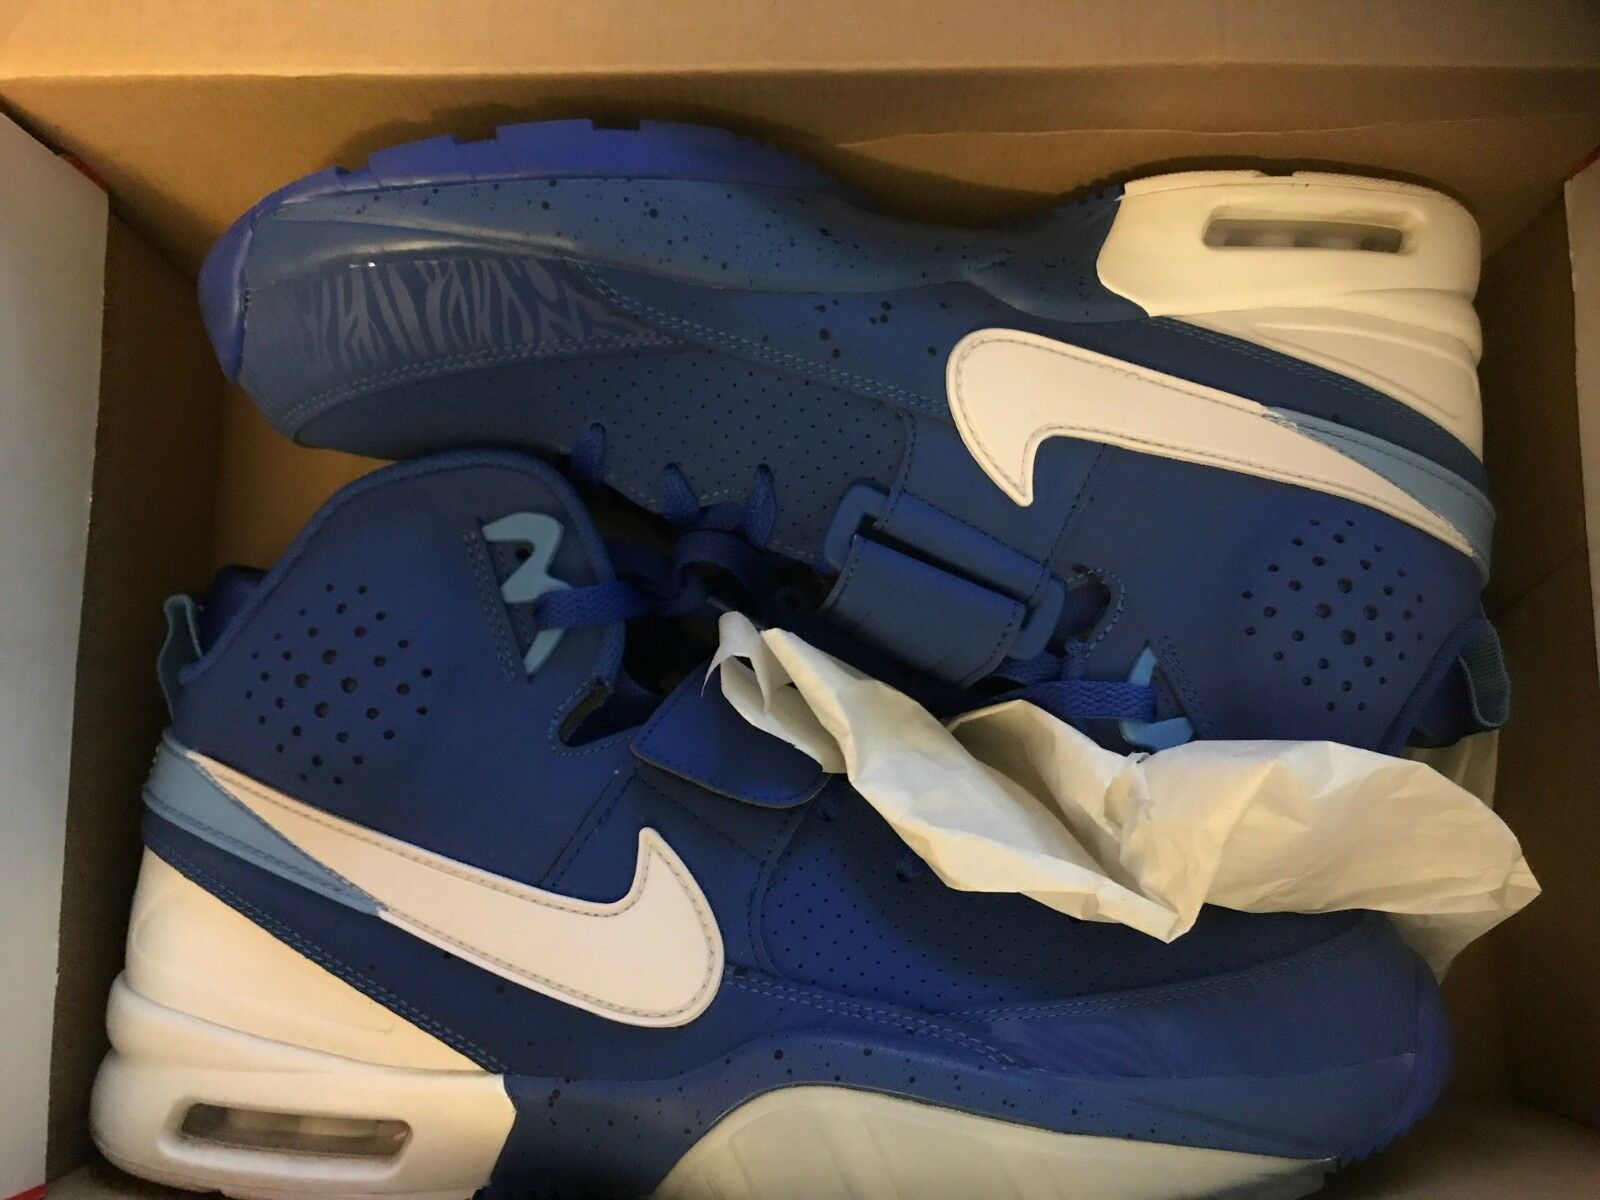 Nike air bo 1 size 13 worn once